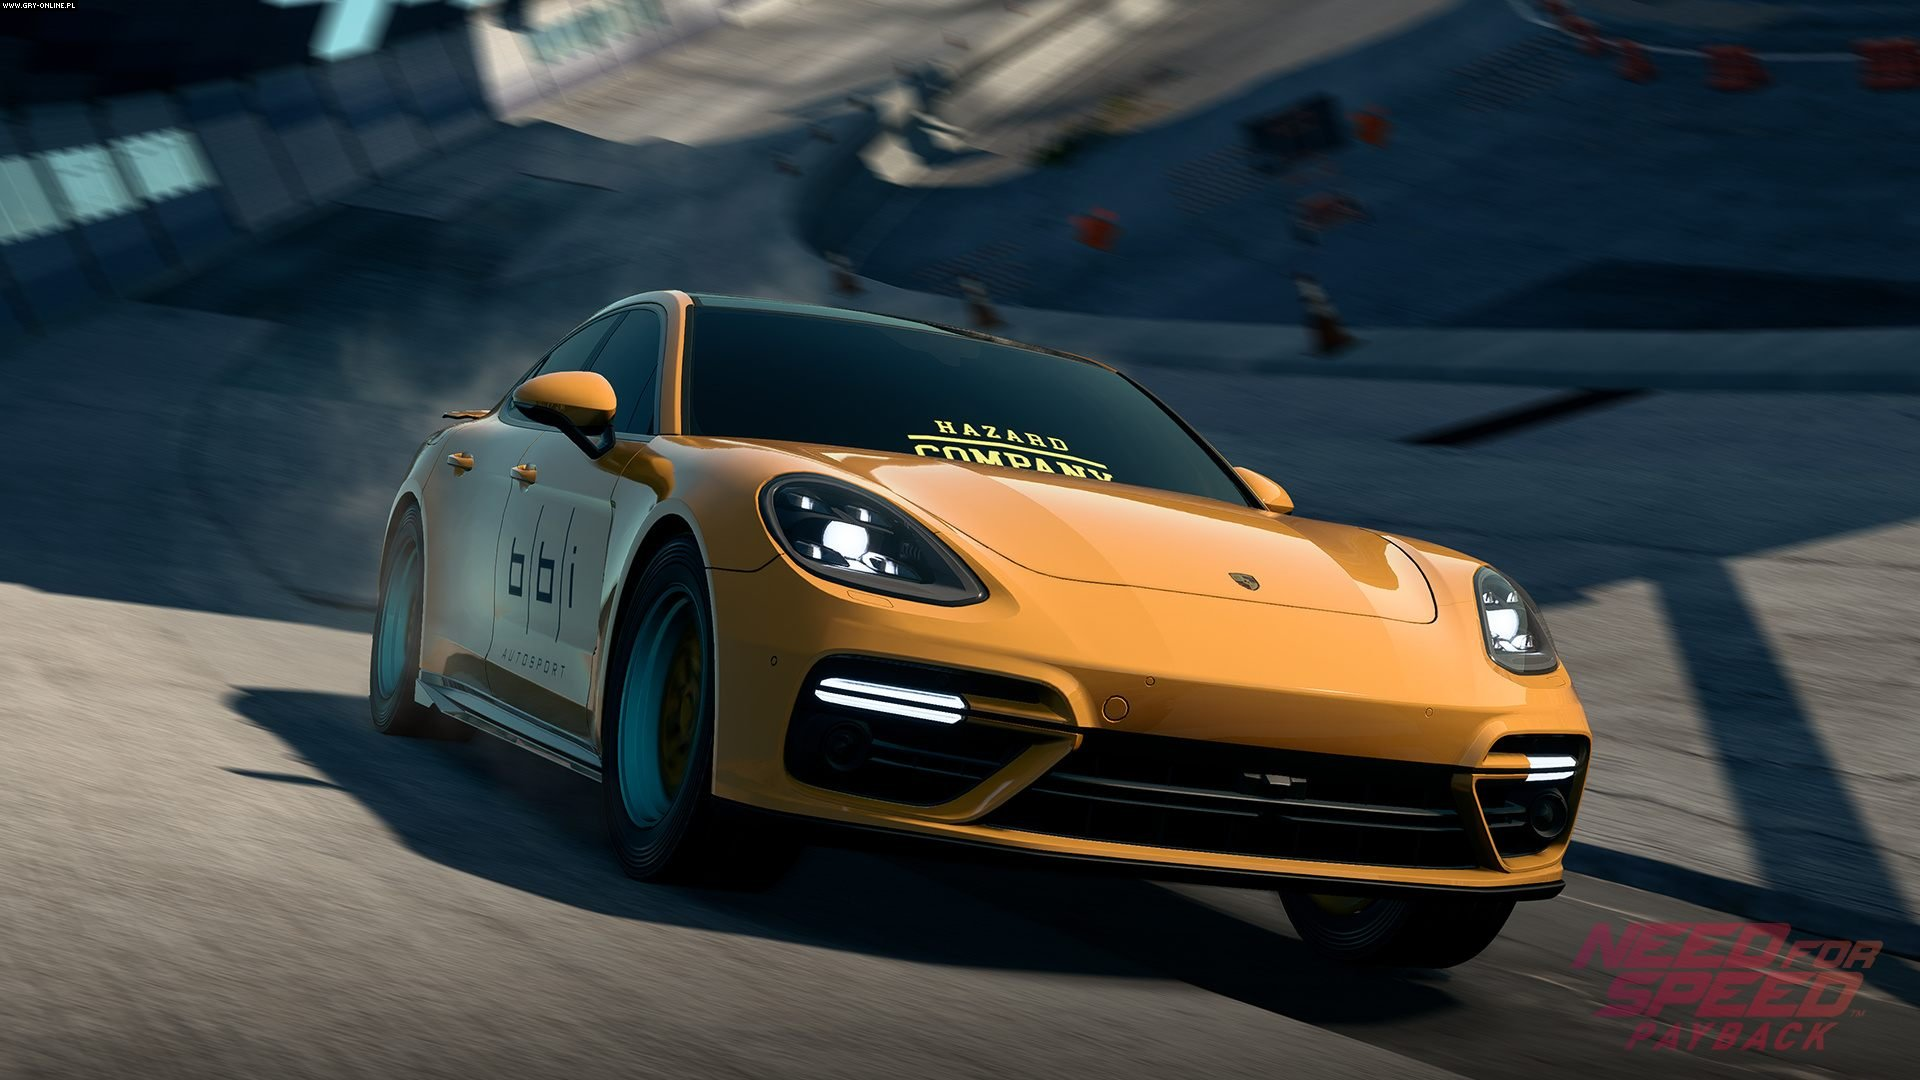 Need for Speed: Payback PC, PS4, XONE Games Image 7/43, Ghost Games, Electronic Arts Inc.